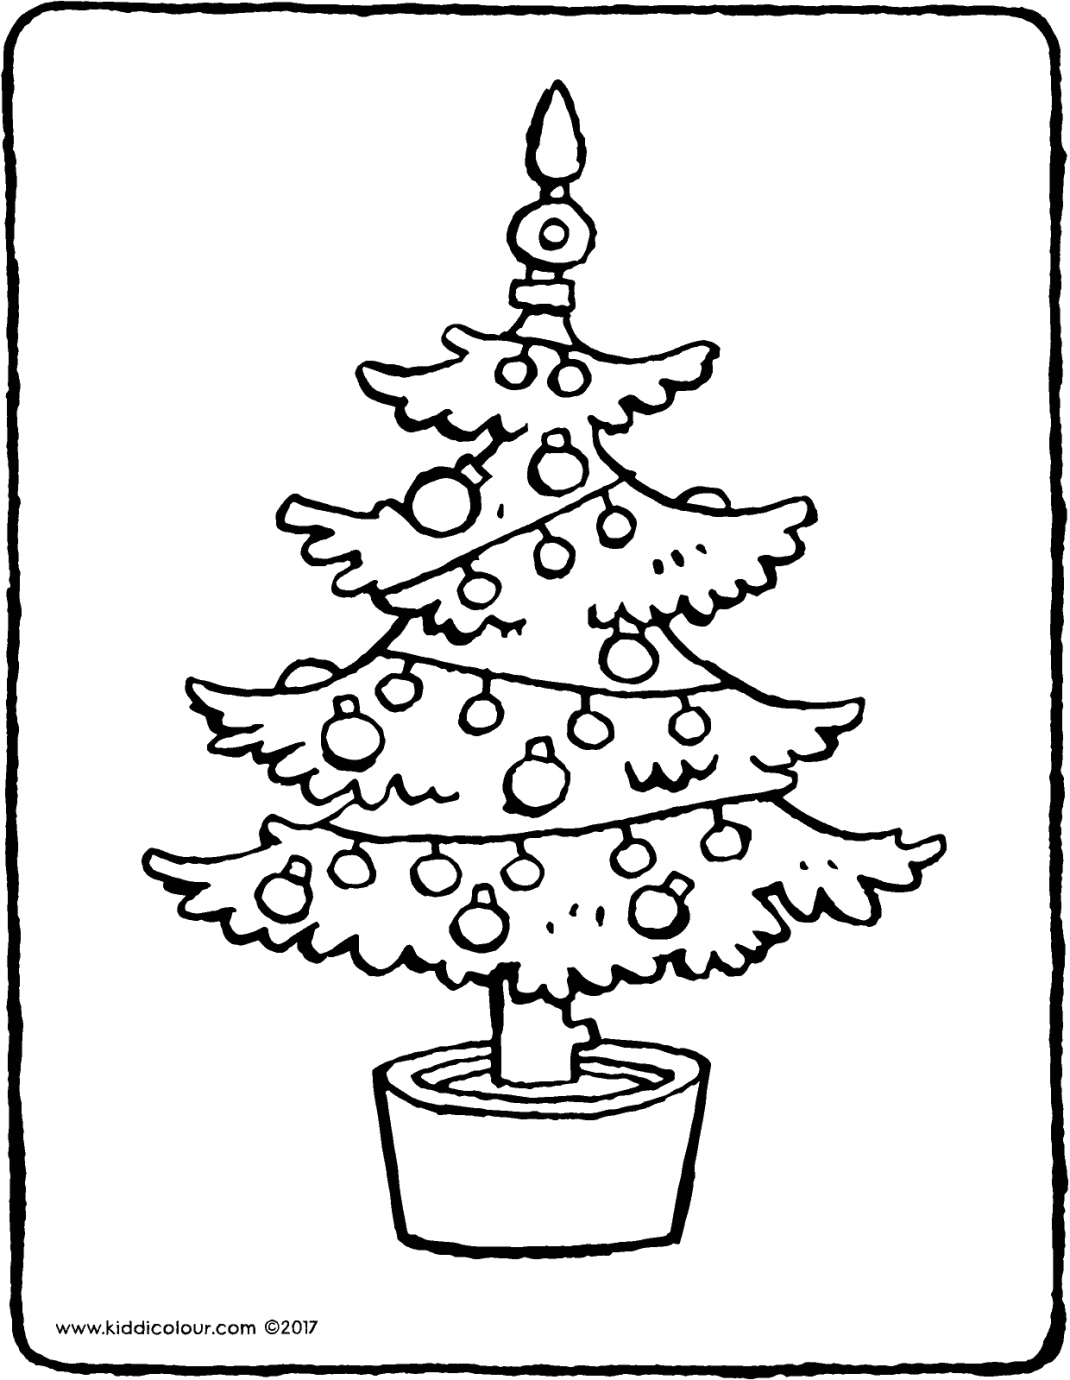 Christmas tree colouring page page drawing picture 01V